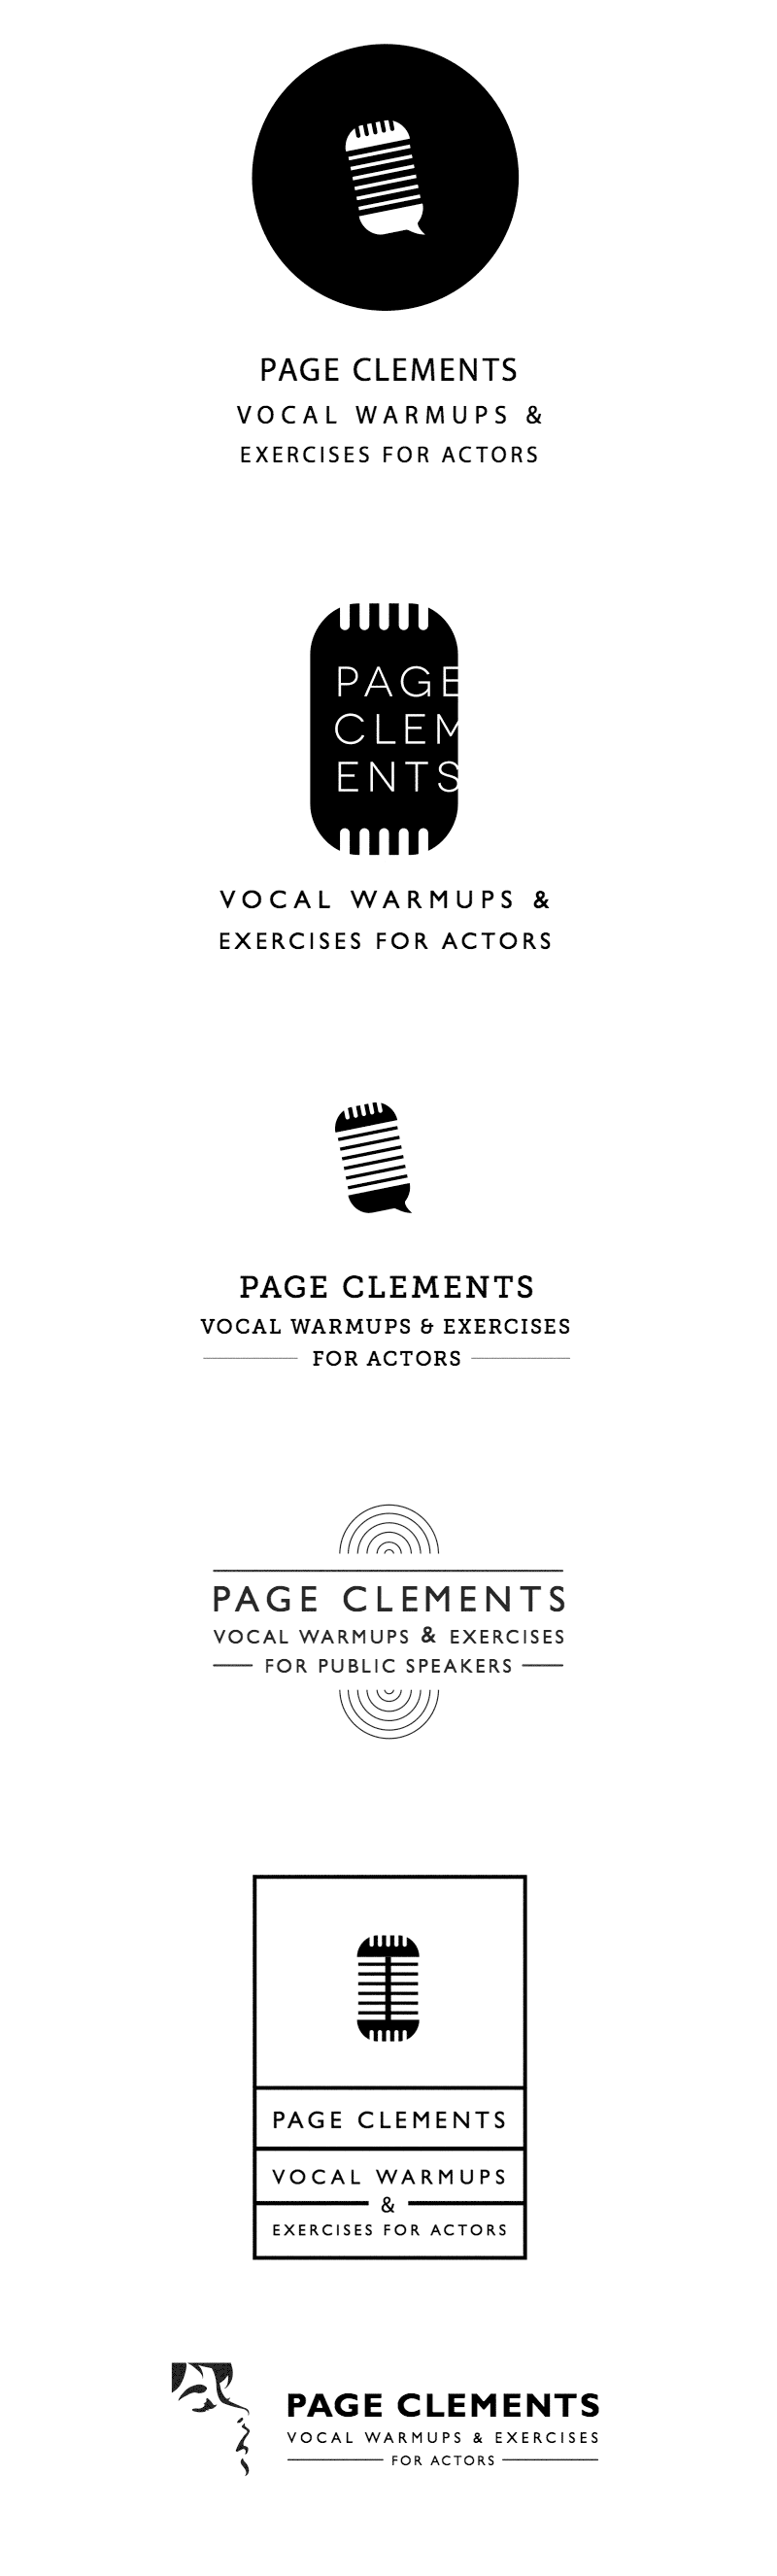 Page Clements Vocal Warmup Logos by mimoYmima.com - Concepts